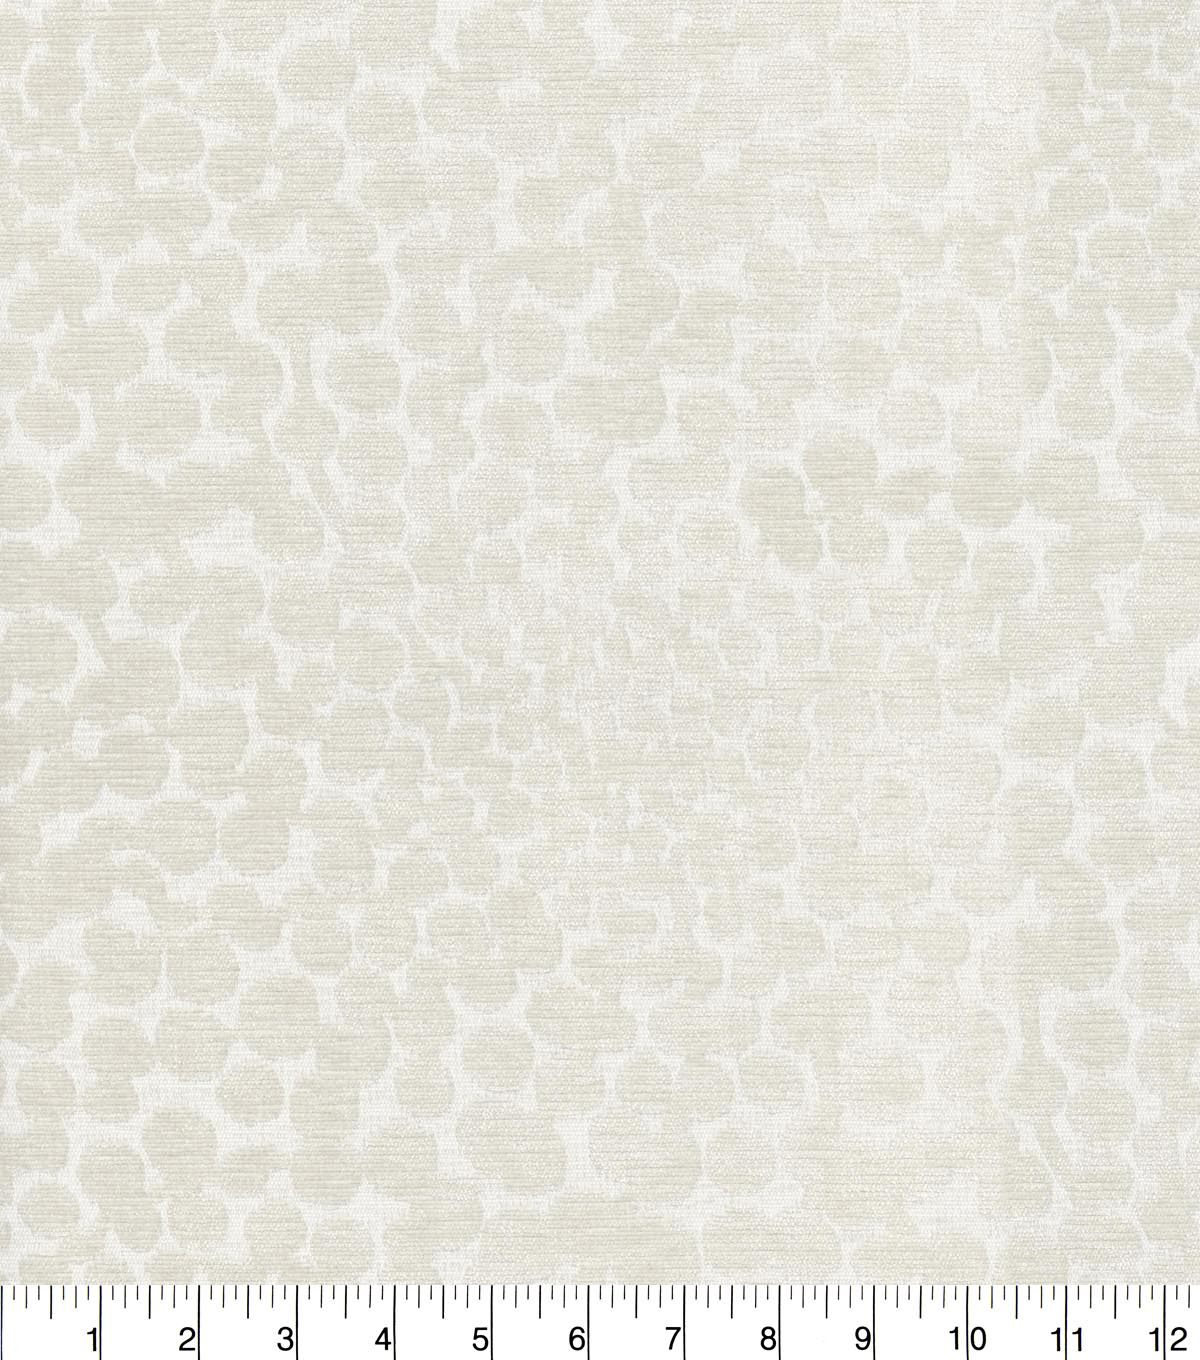 Home Decor 8\u0022x8\u0022 Fabric Swatch-Waverly Shadow Bloom Crystal